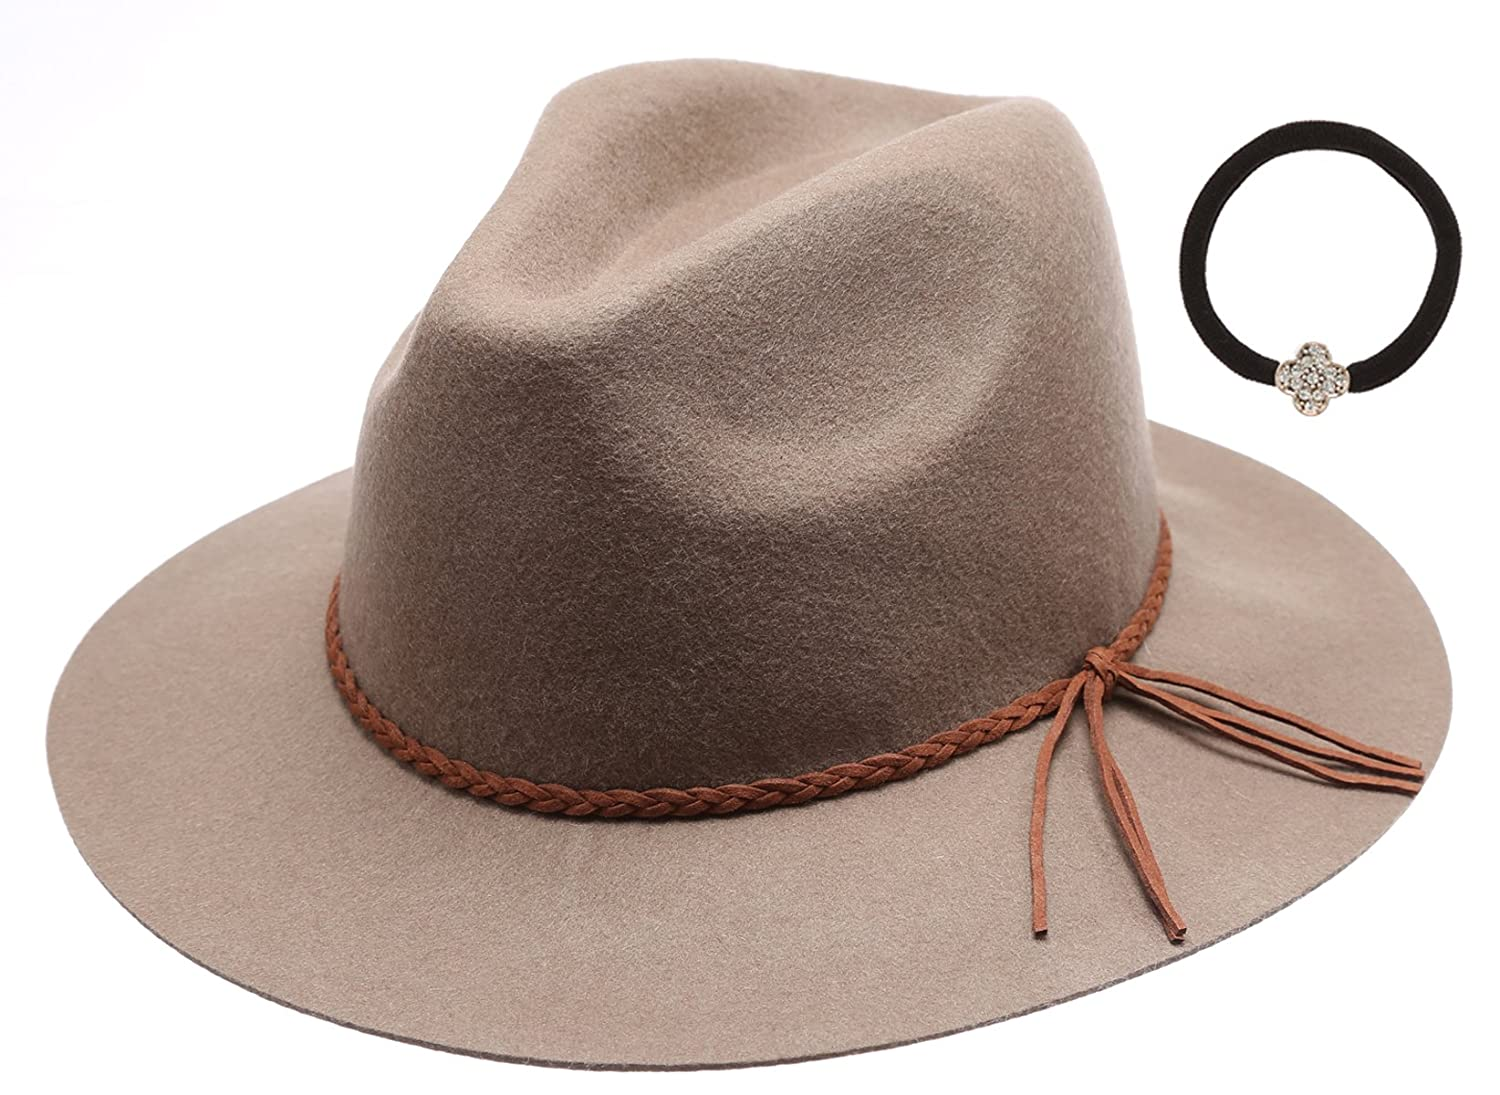 cf135bd8455 Women s 100% Wool Felt Cloche Short Brim Floppy Fedora Hat with Scrunchy -  Brown -  Amazon.co.uk  Clothing